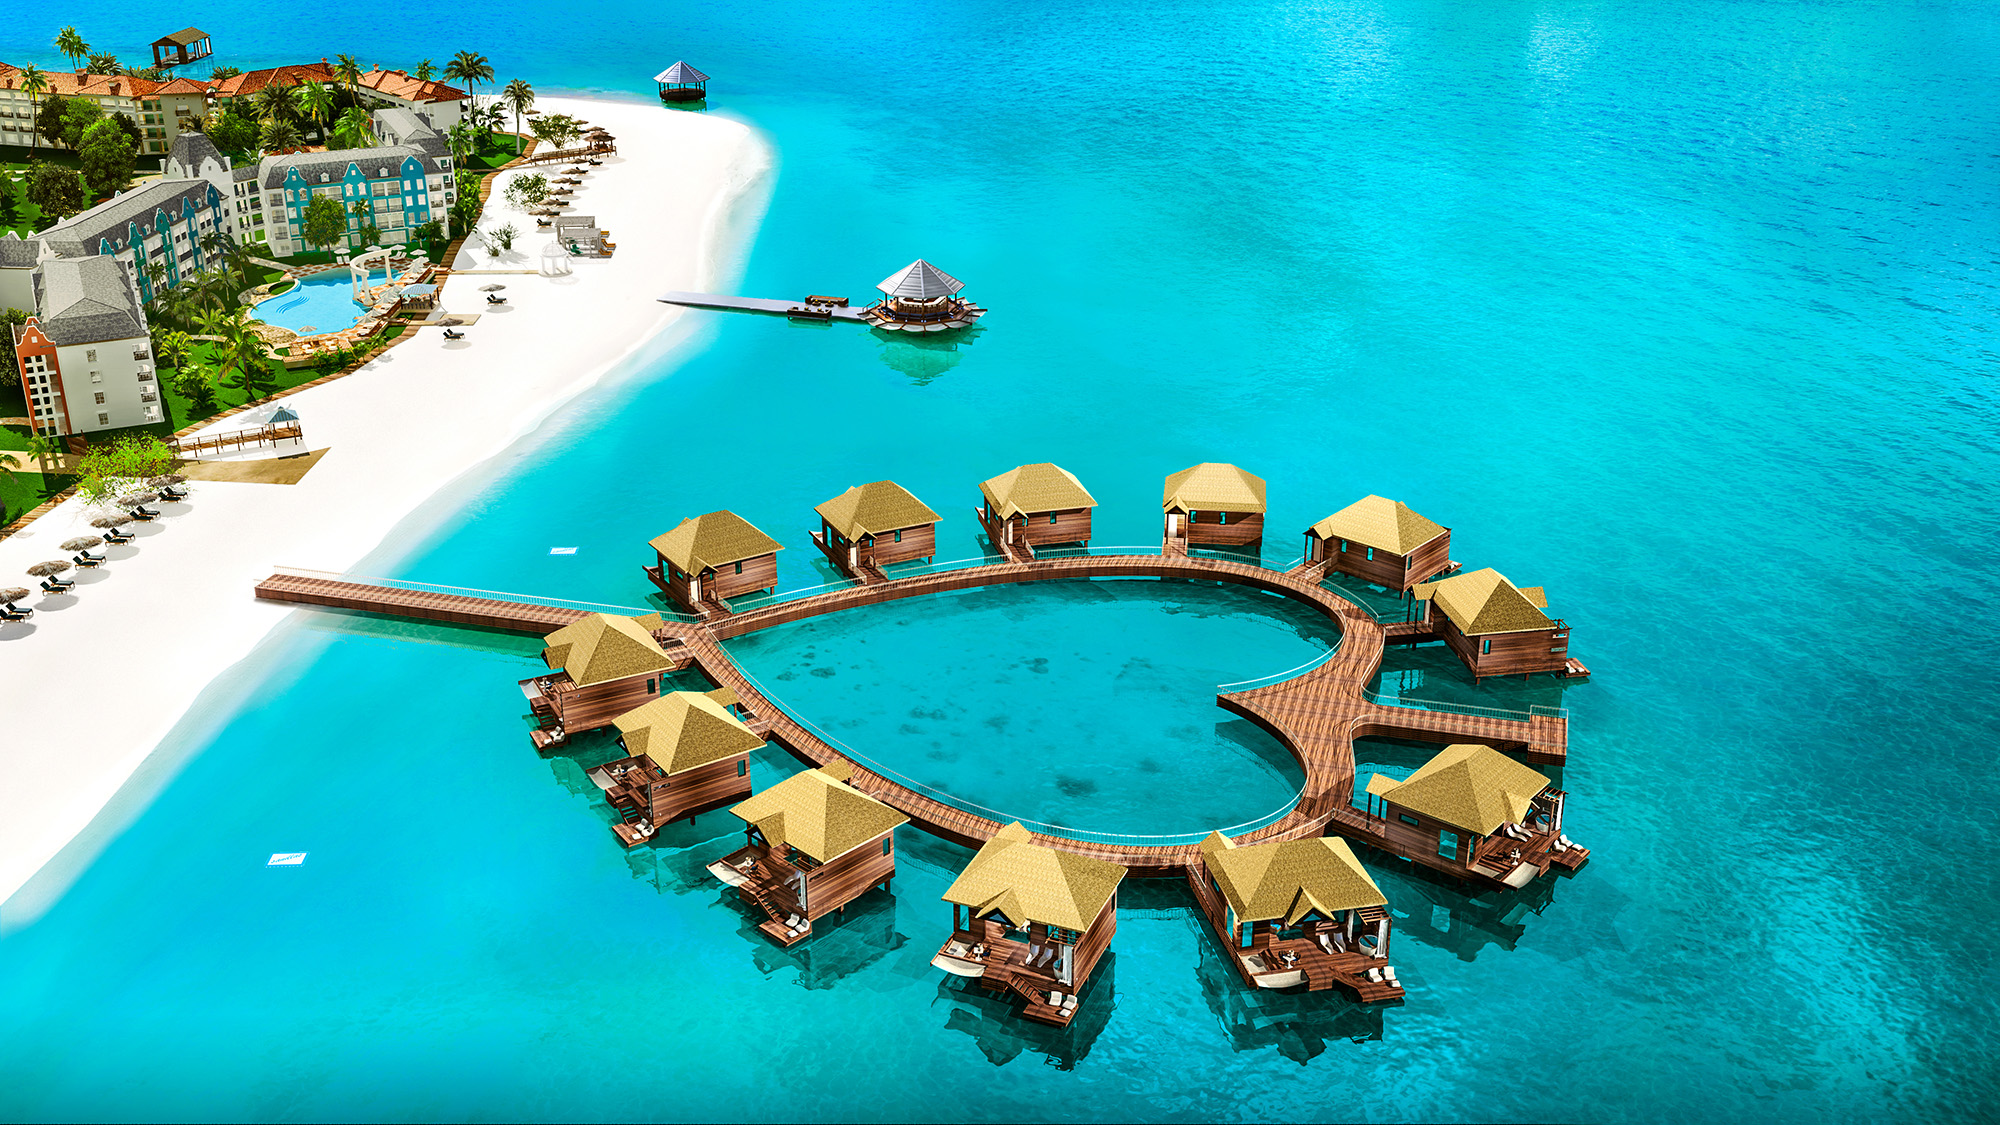 The bungalows have been constructed around a dock in the shape of a heart.